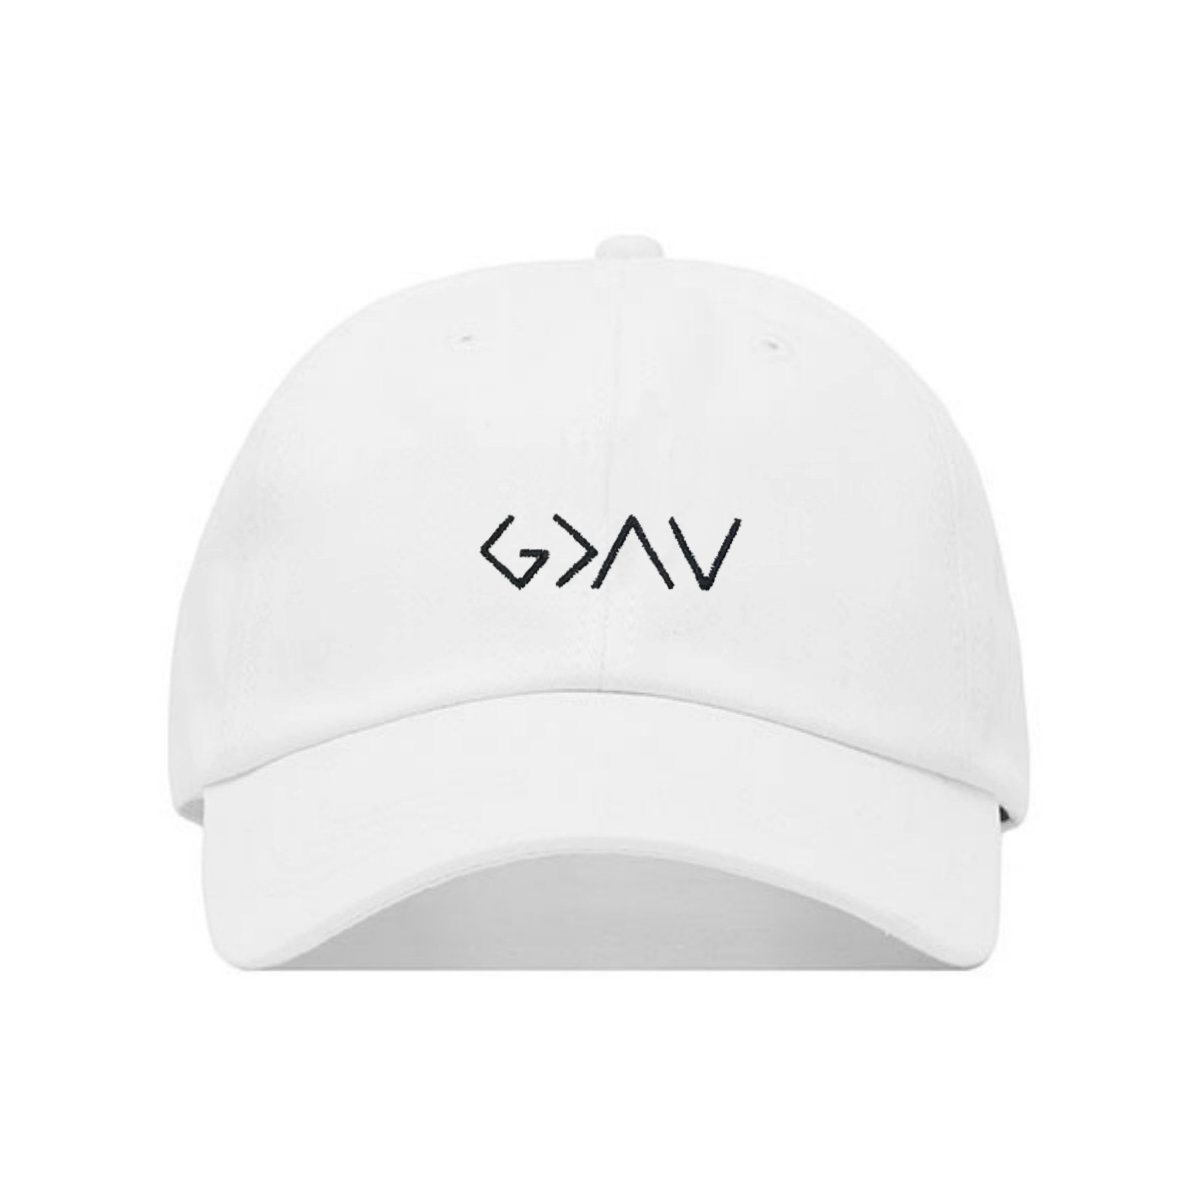 God is Greater Than The Highs and Lows Dad Hat, Embroidered Baseball Cap, 100% Cotton, Unstructured Adjustable Strap Back, 6 Panel, One Size Fits Most (Multiple Colors) (White)